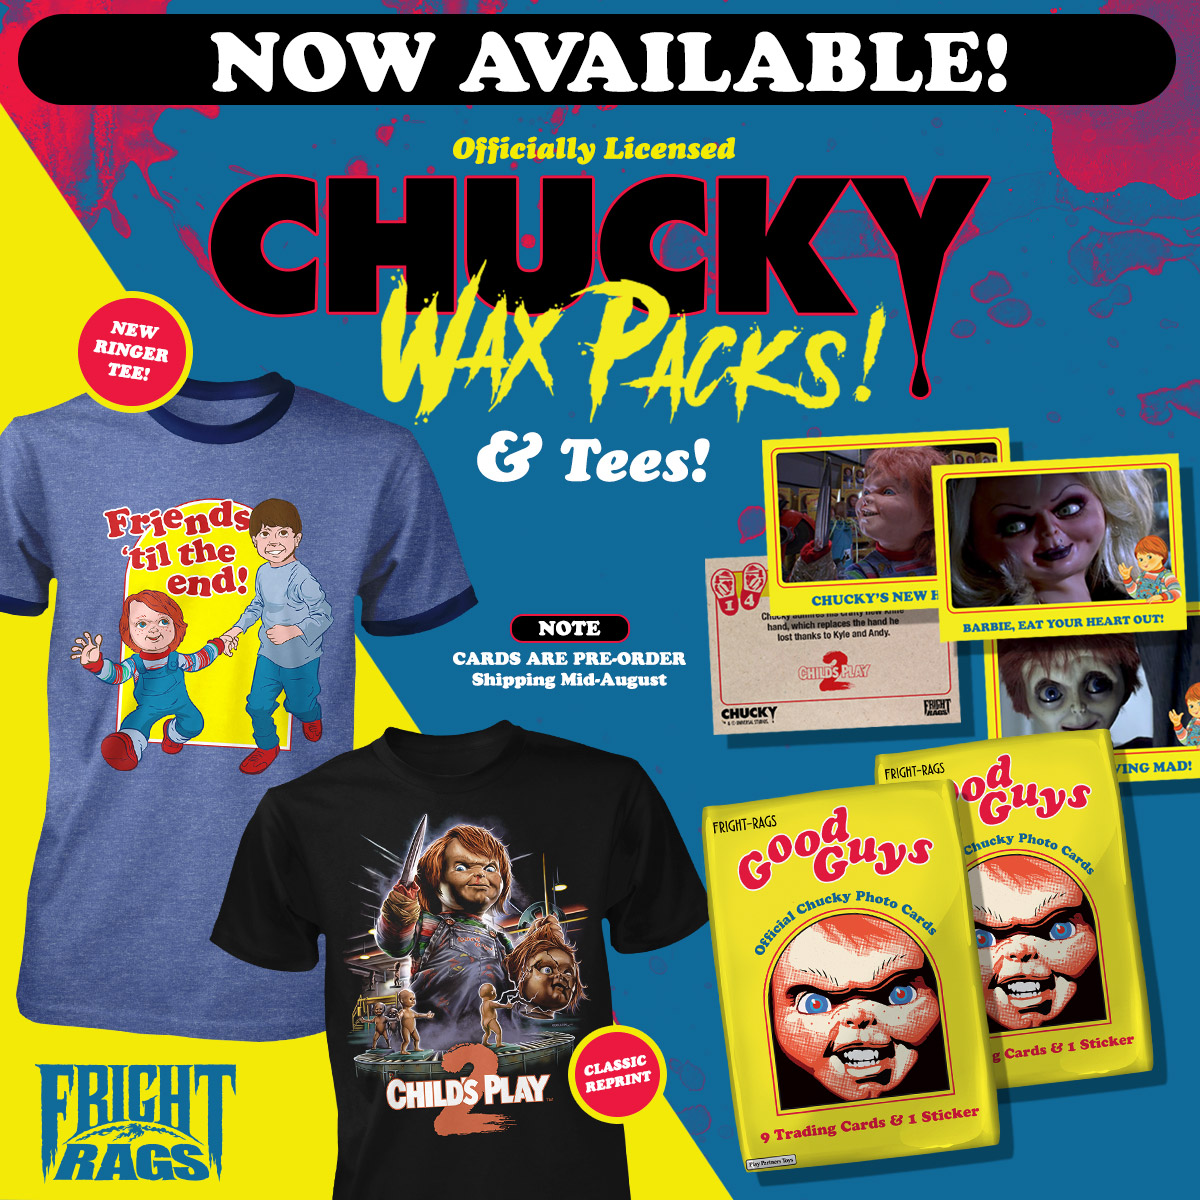 Chucky & Jaws Merchandise on Sale Now From Fright-Rags